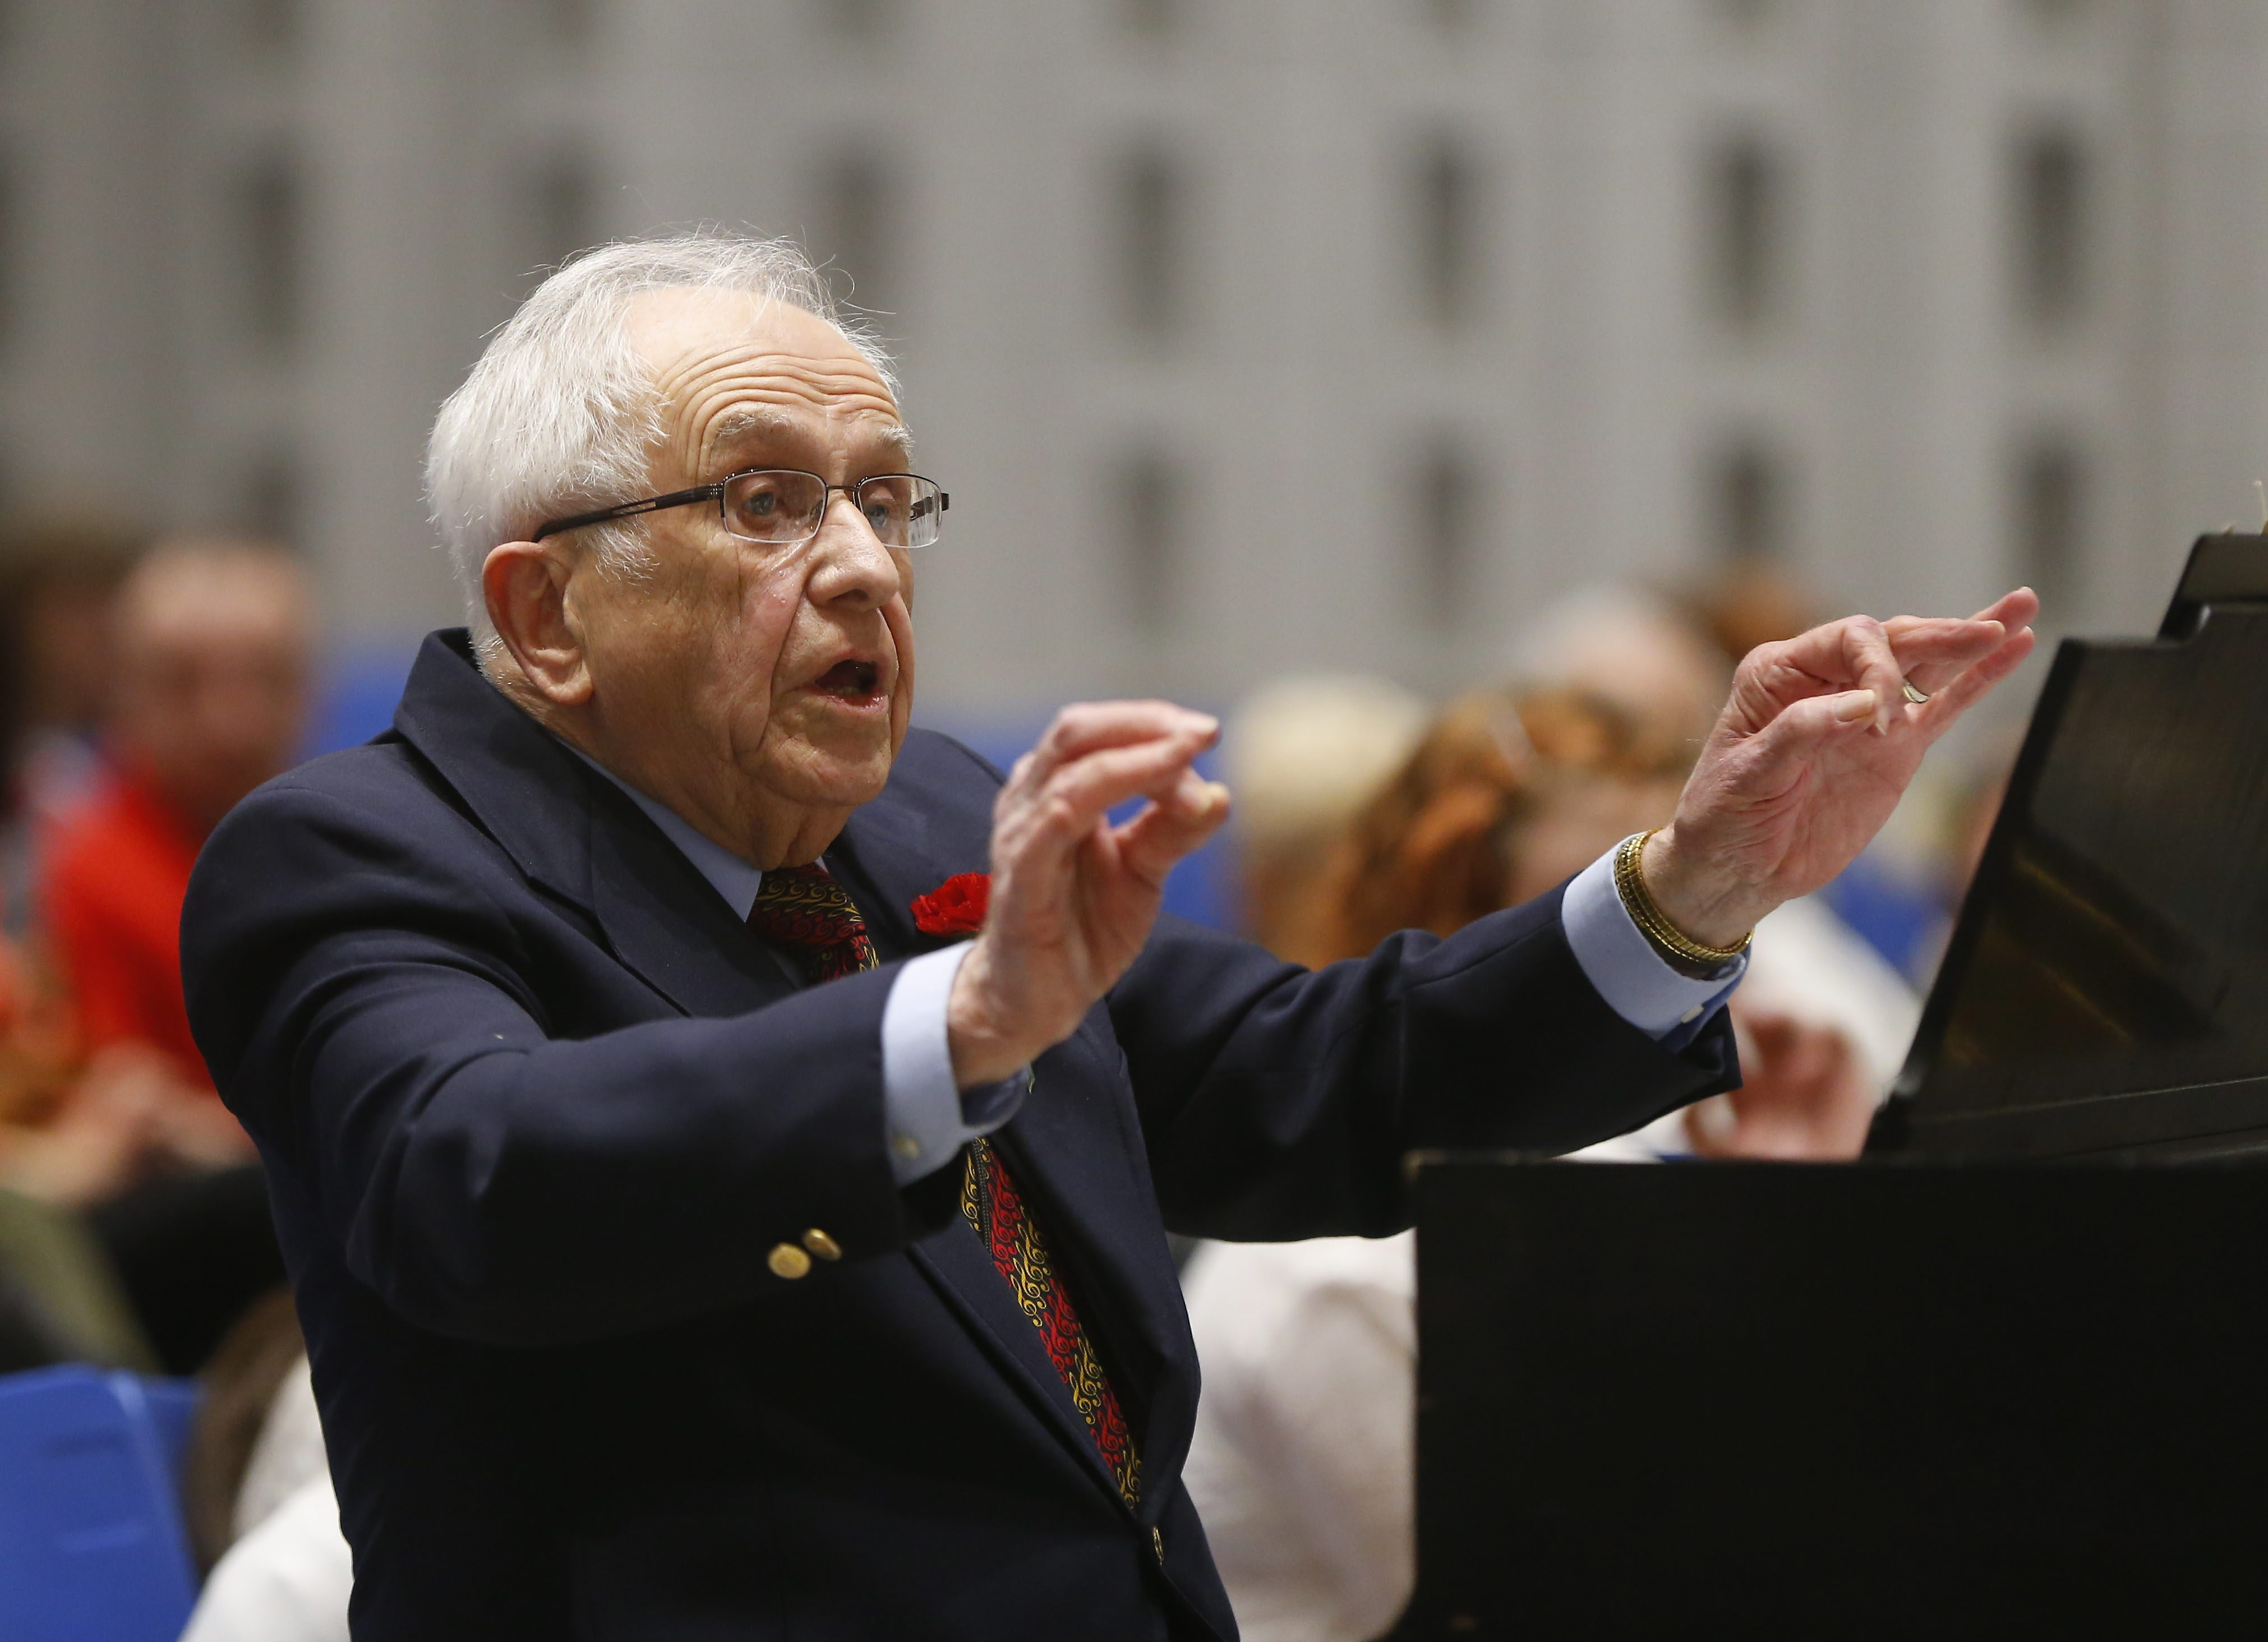 Heim Middle School music teacher Dr. Roy W. Clare conducts his 7/8 grade chorus on his final performance capping his 57 year teaching career at the school's Spring Concert in Amherst Wednesday, May 4, 2016.   (Mark Mulville/Buffalo News)